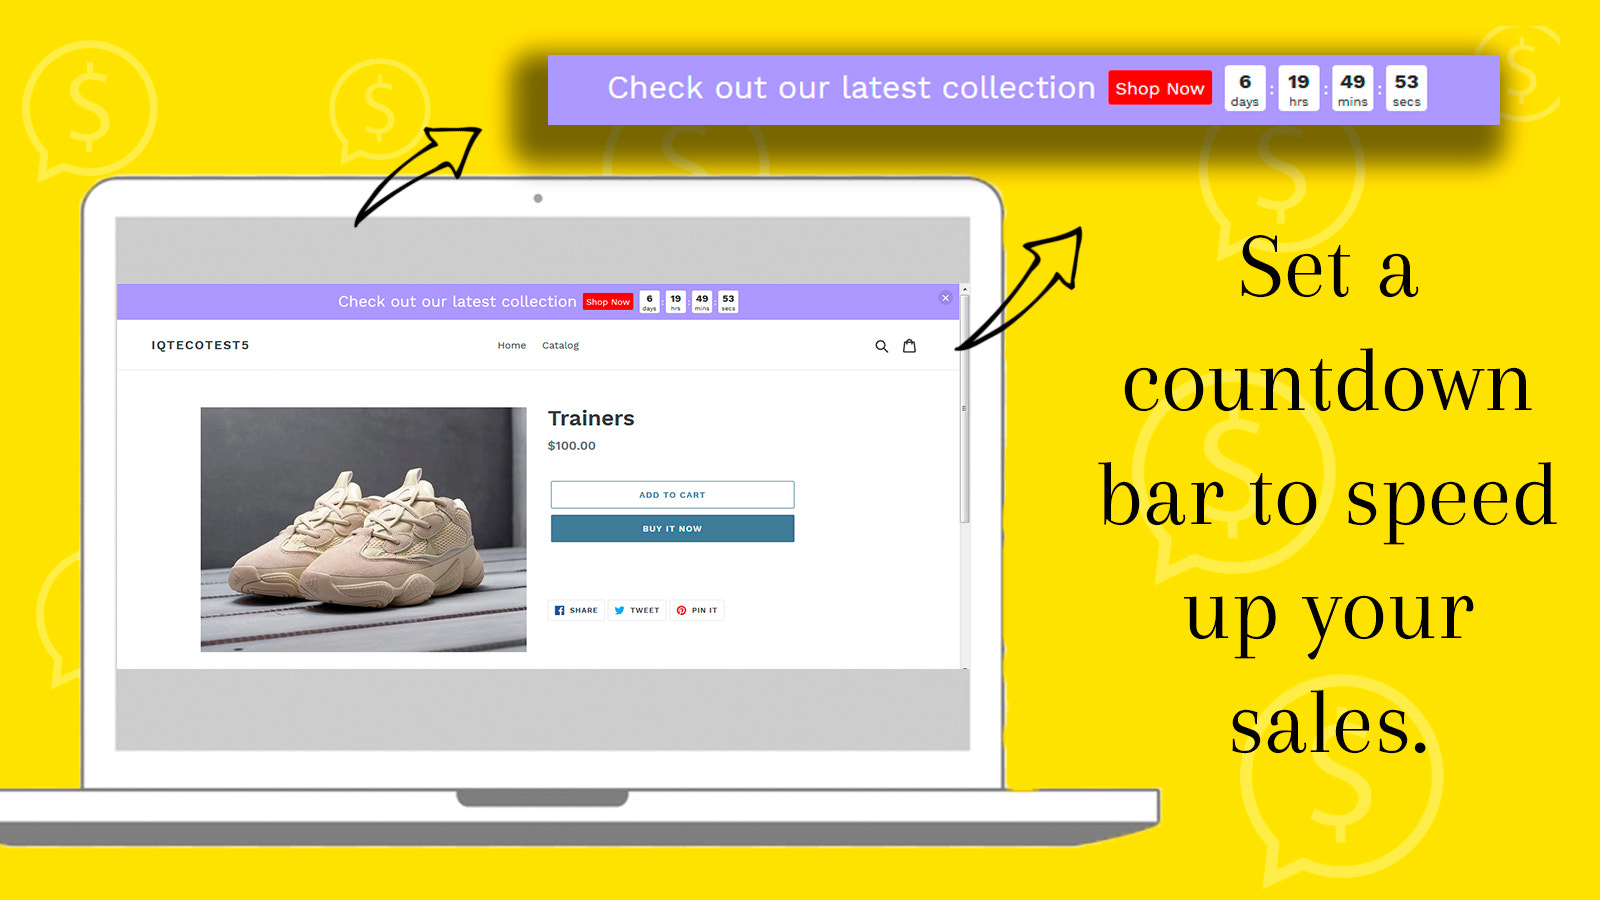 Set a countdown bar to speed up your sales.